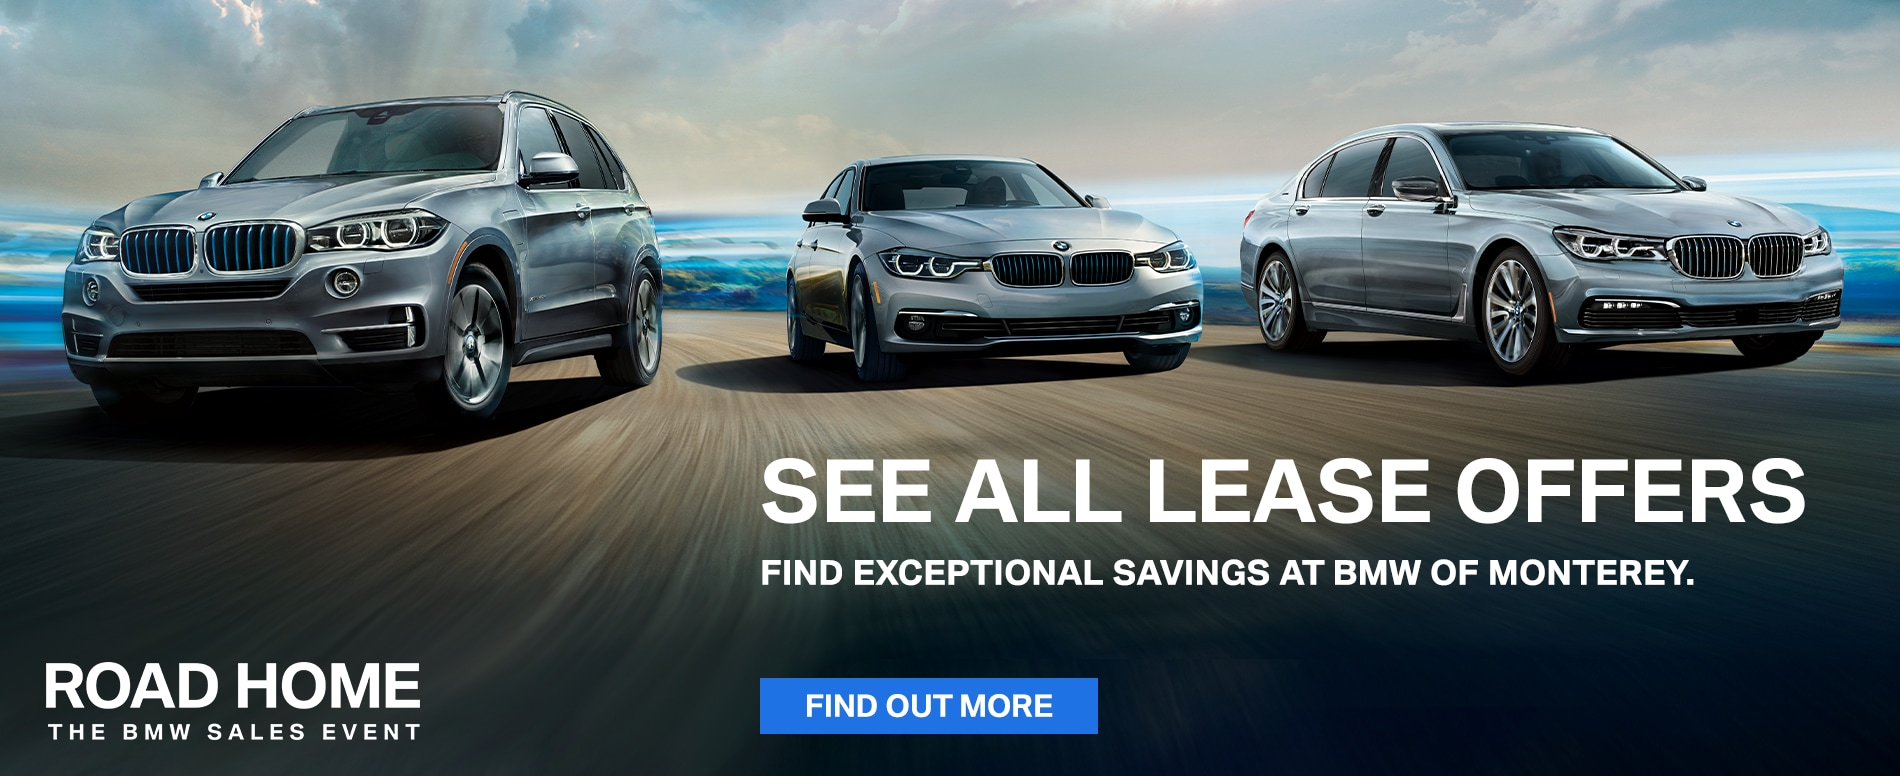 Seaside Bmw Of Monterey New Used Bmw Cars Auto Service Parts